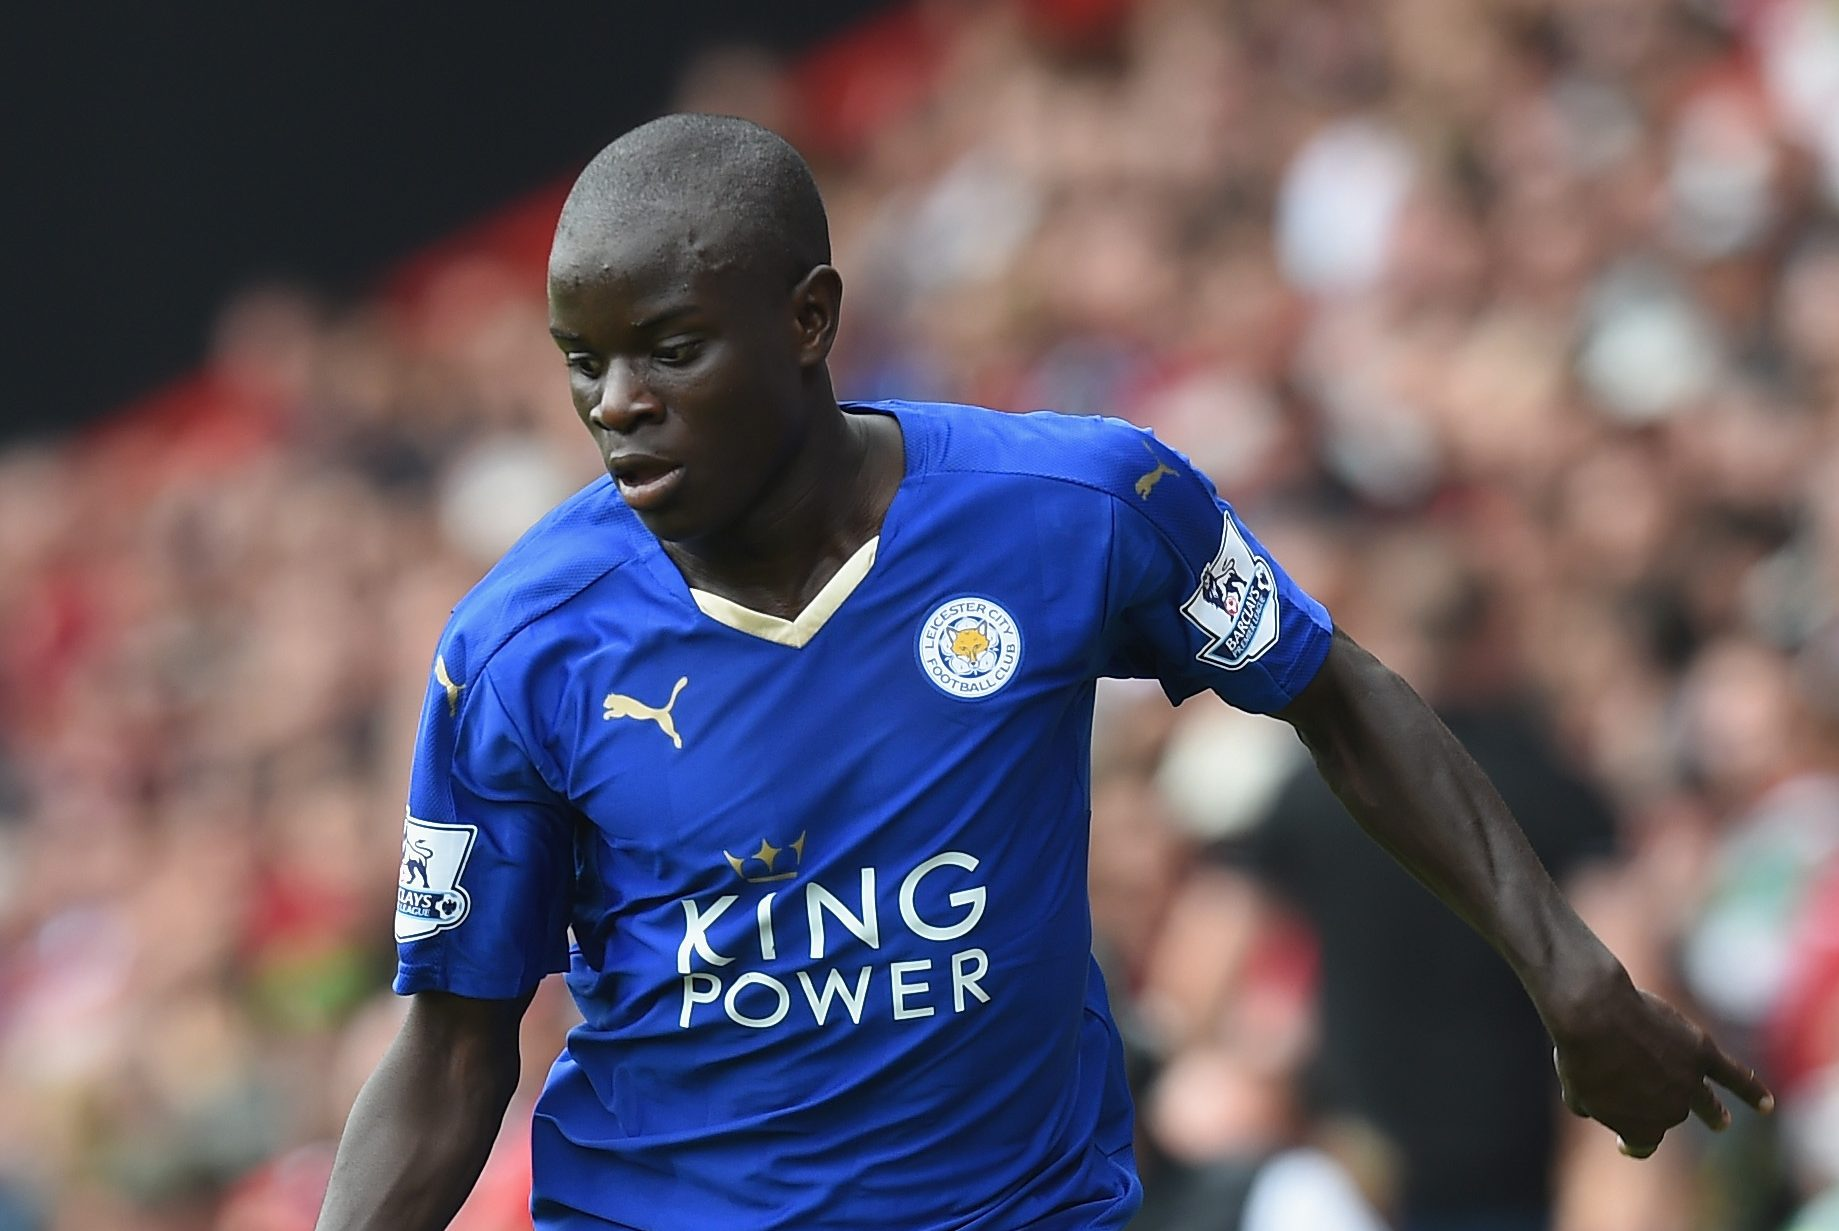 N'Golo Kante 'pushed' for Chelsea transfer, says Leicester City boss Claudio Ranieri